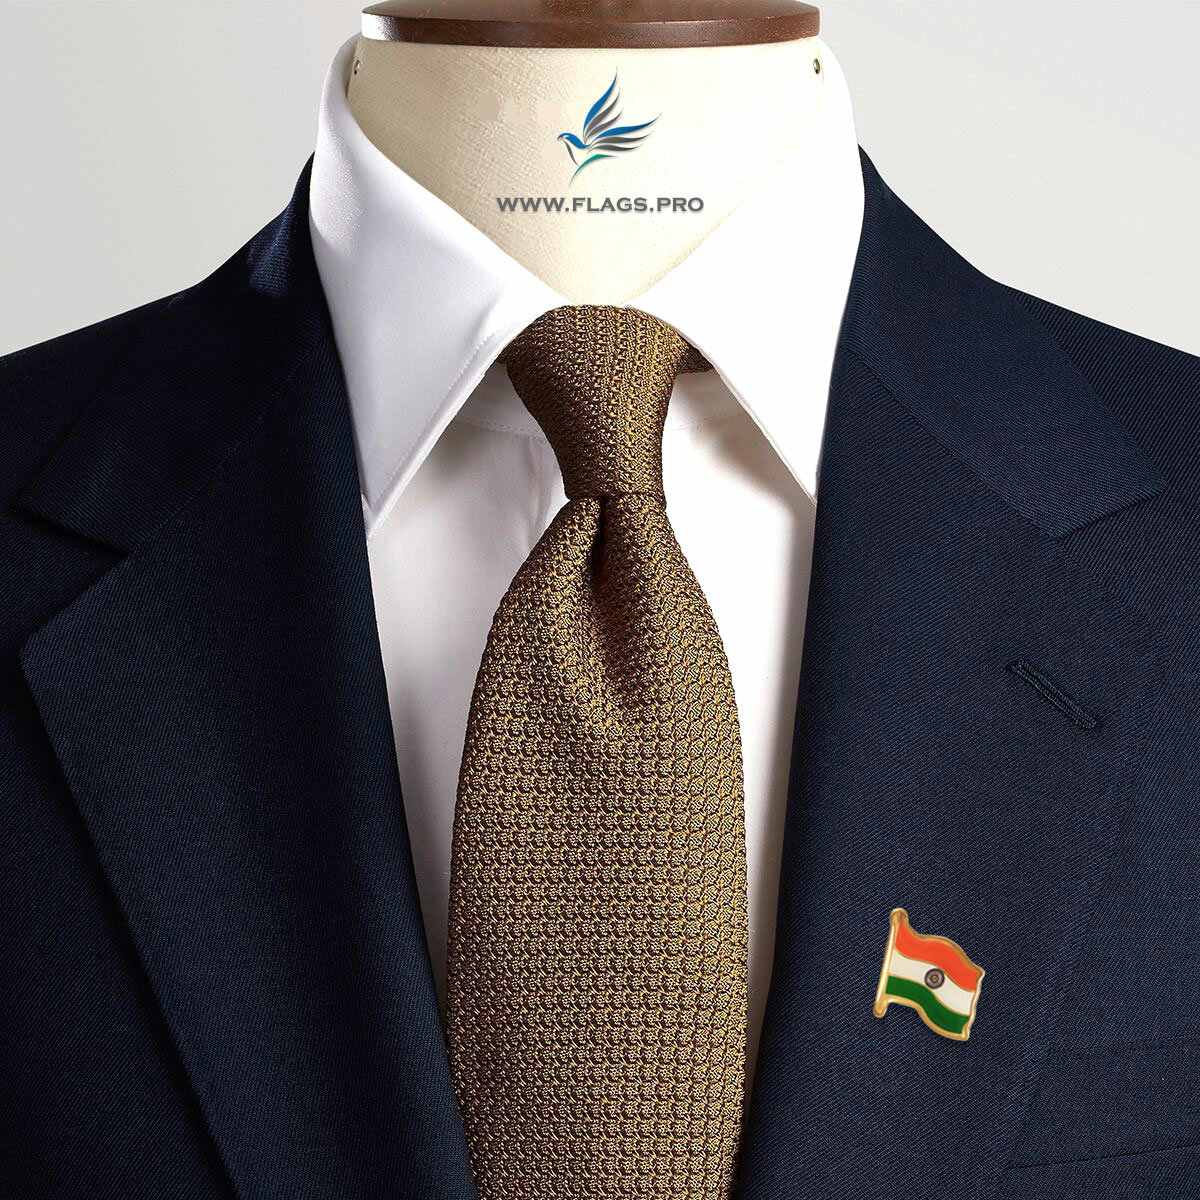 Indian National Flag Gold Plated Brass Medium Lapel Pin On A Men's Suit